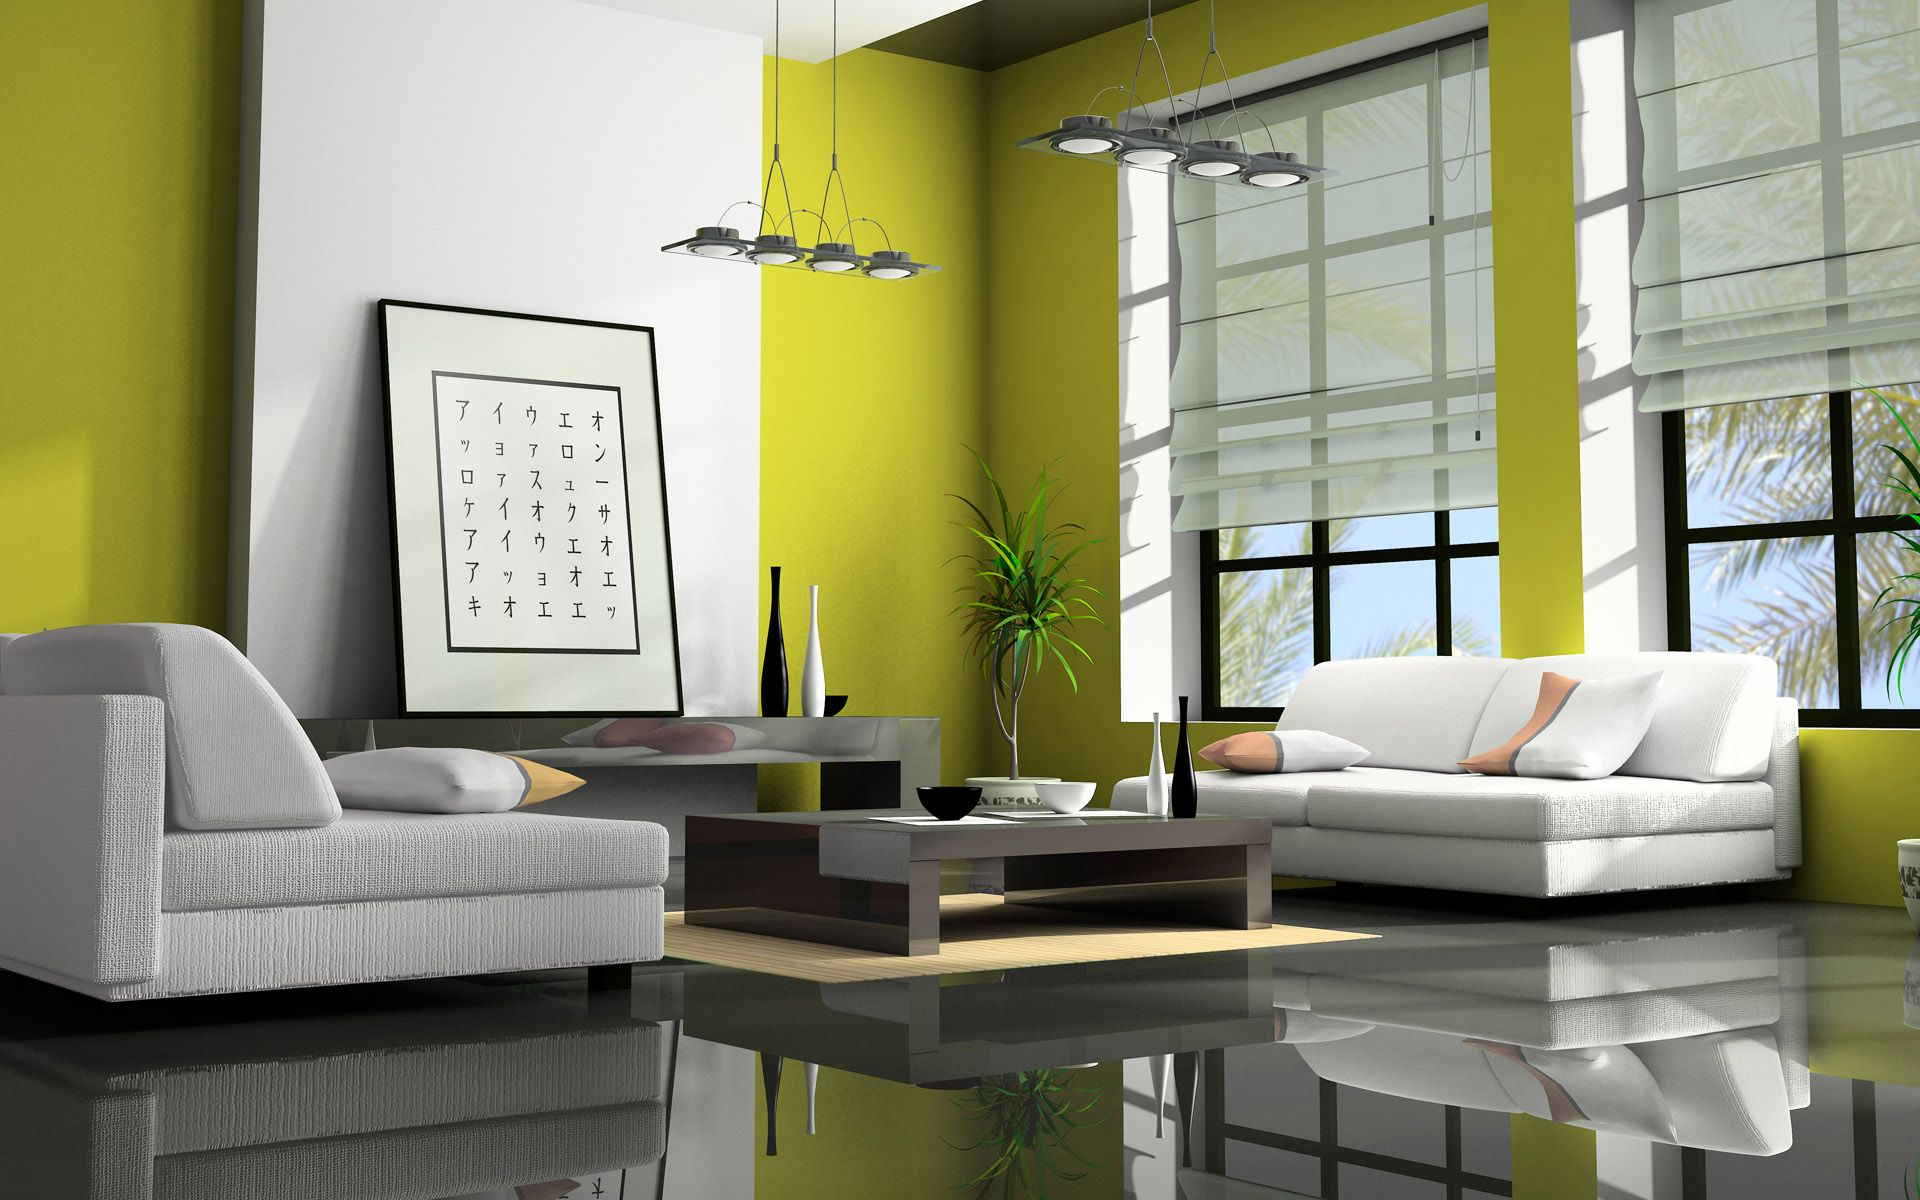 Living Room Design Program Glamorous Diseño De Interiores Arquitectura  Room Design Software Living Design Inspiration